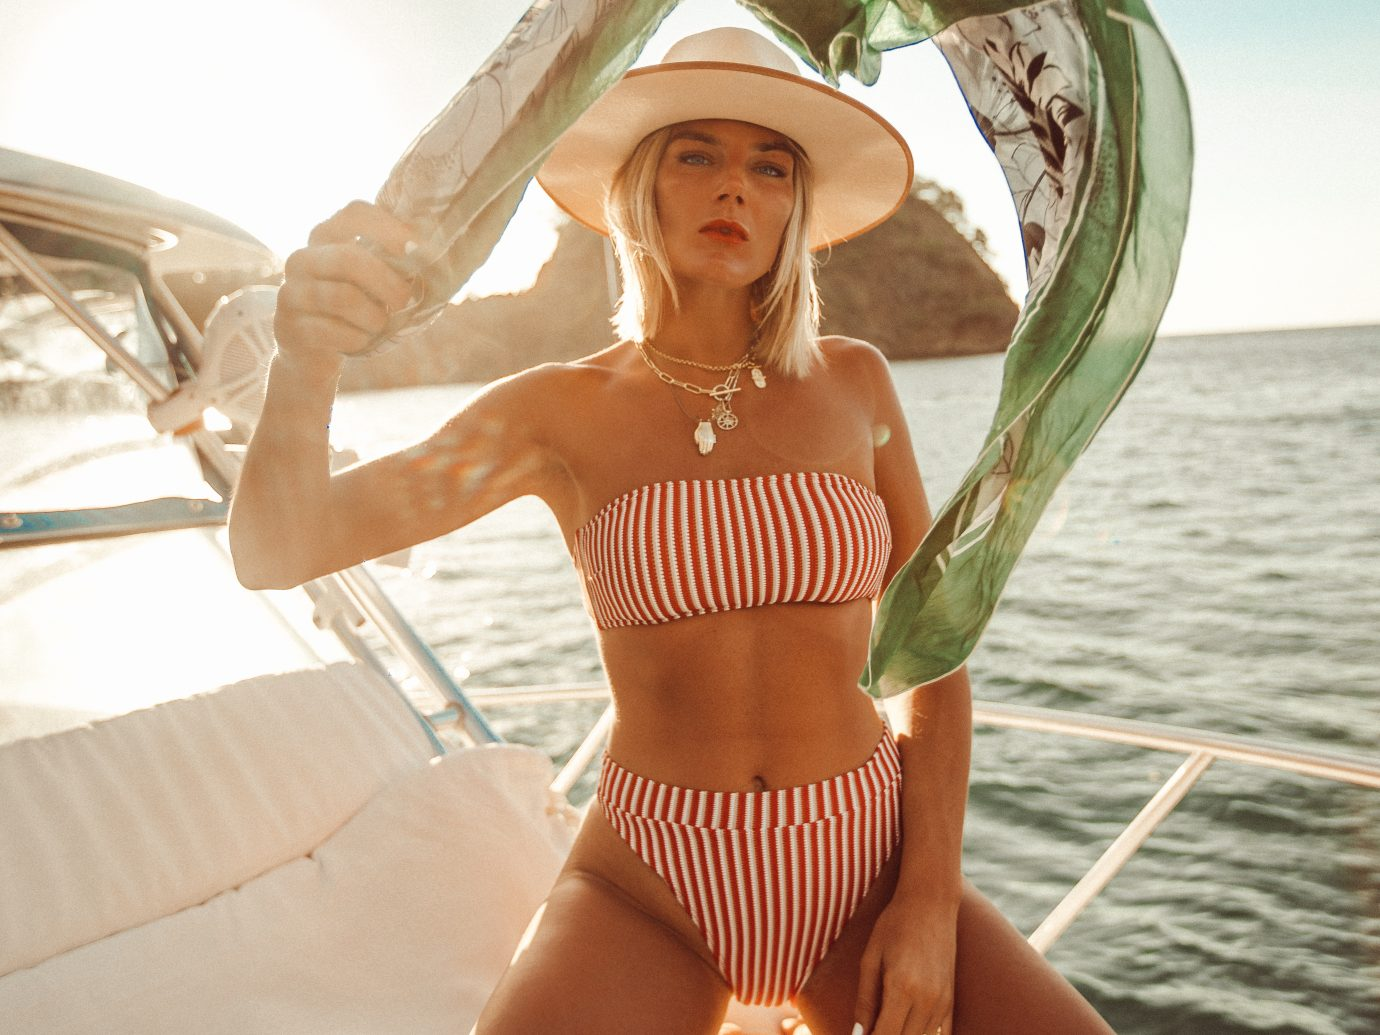 Girl on a boat in Costa Rica